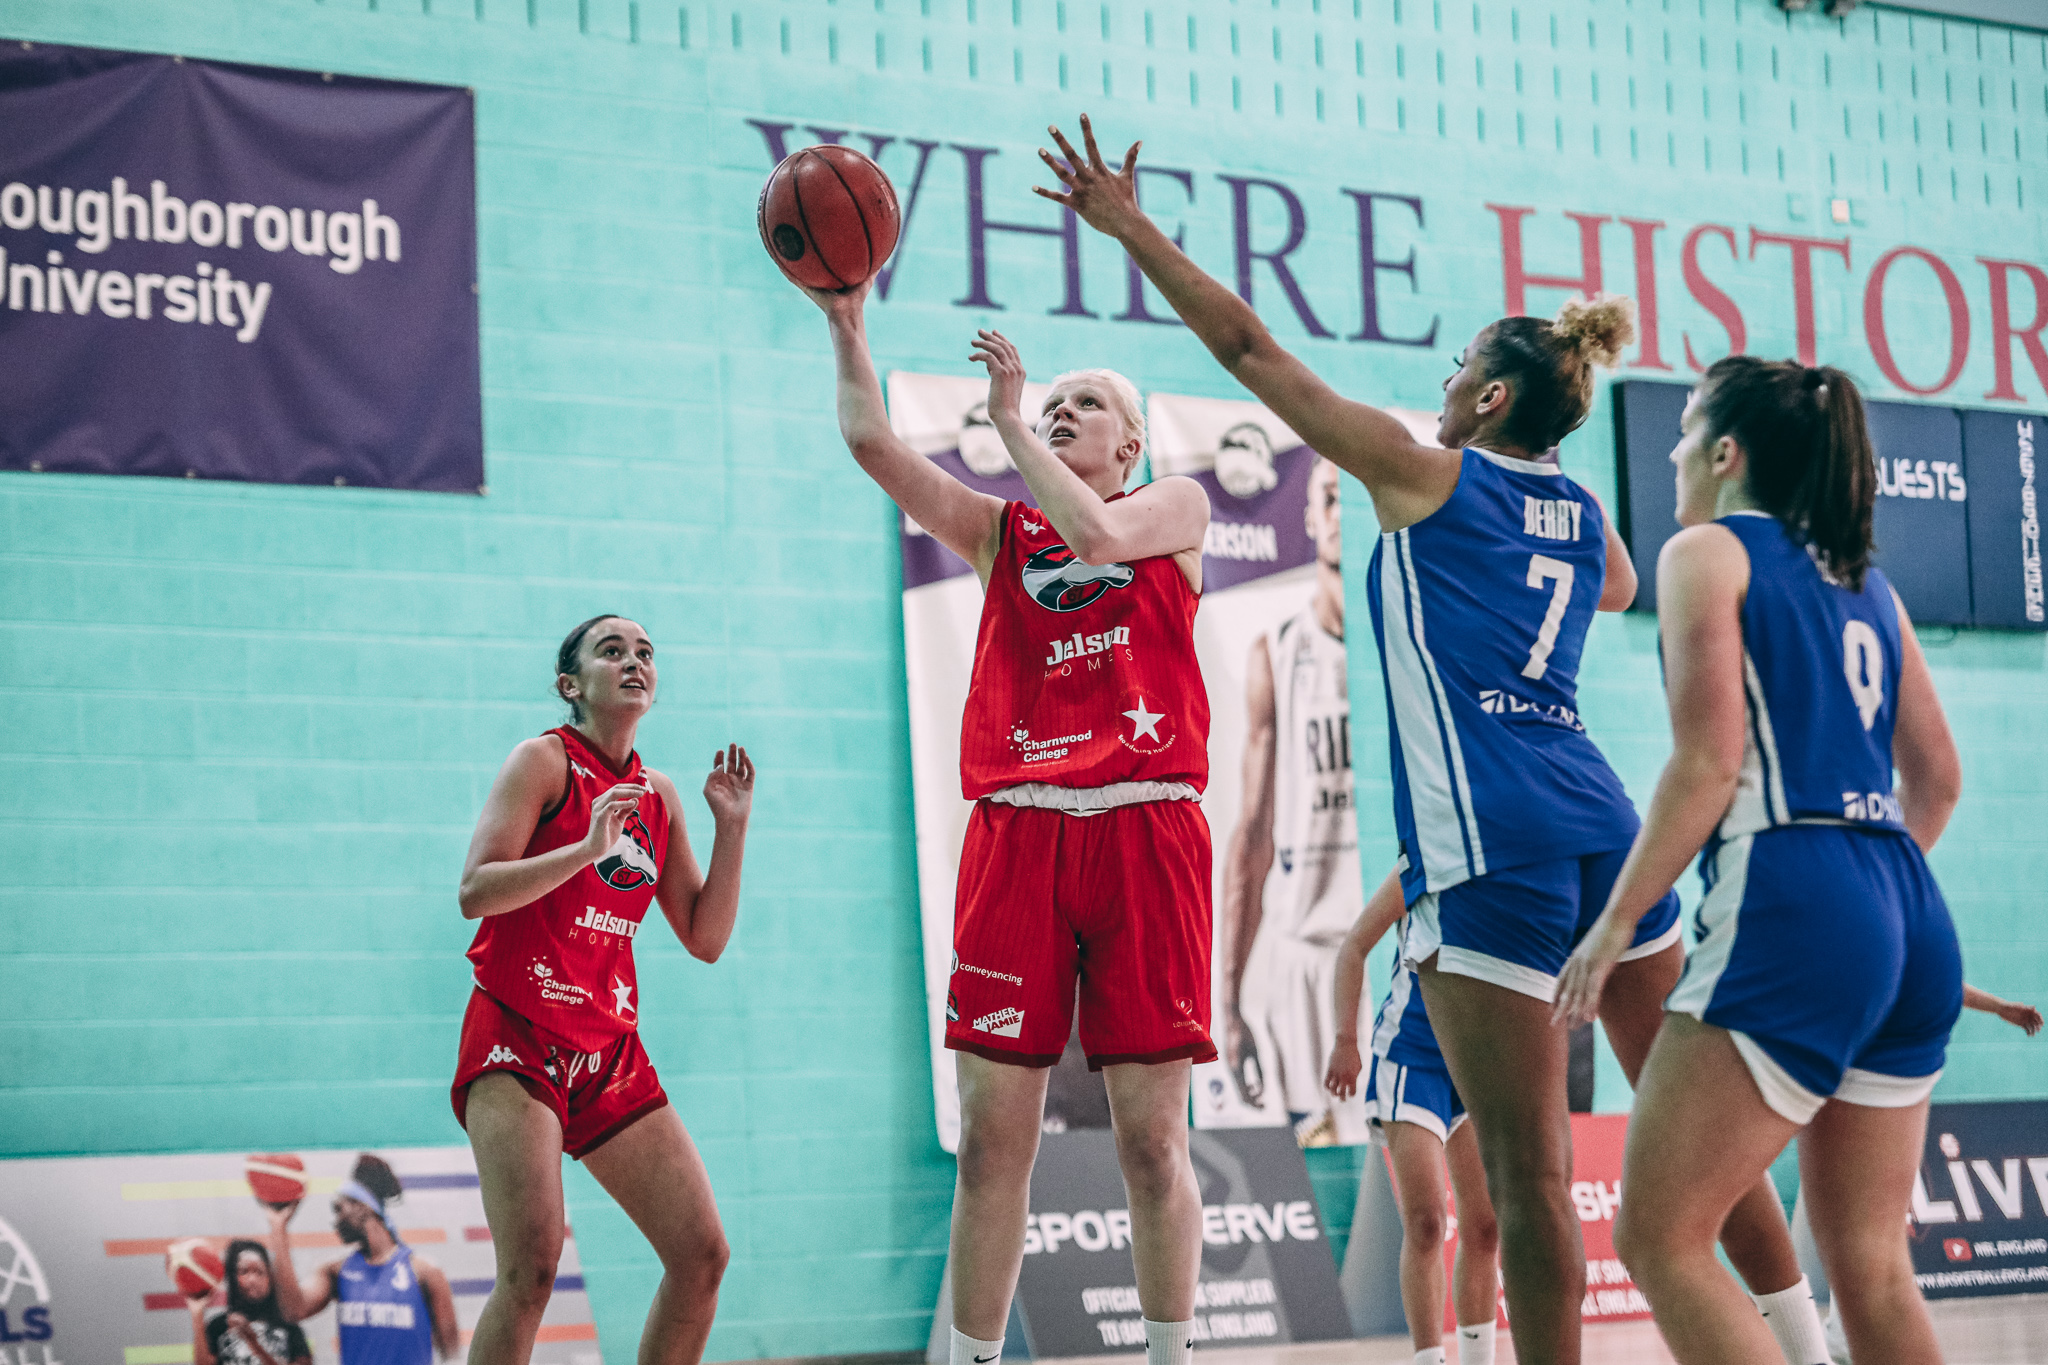 Charnwood Get Their First WEABL Summer Showcase Win